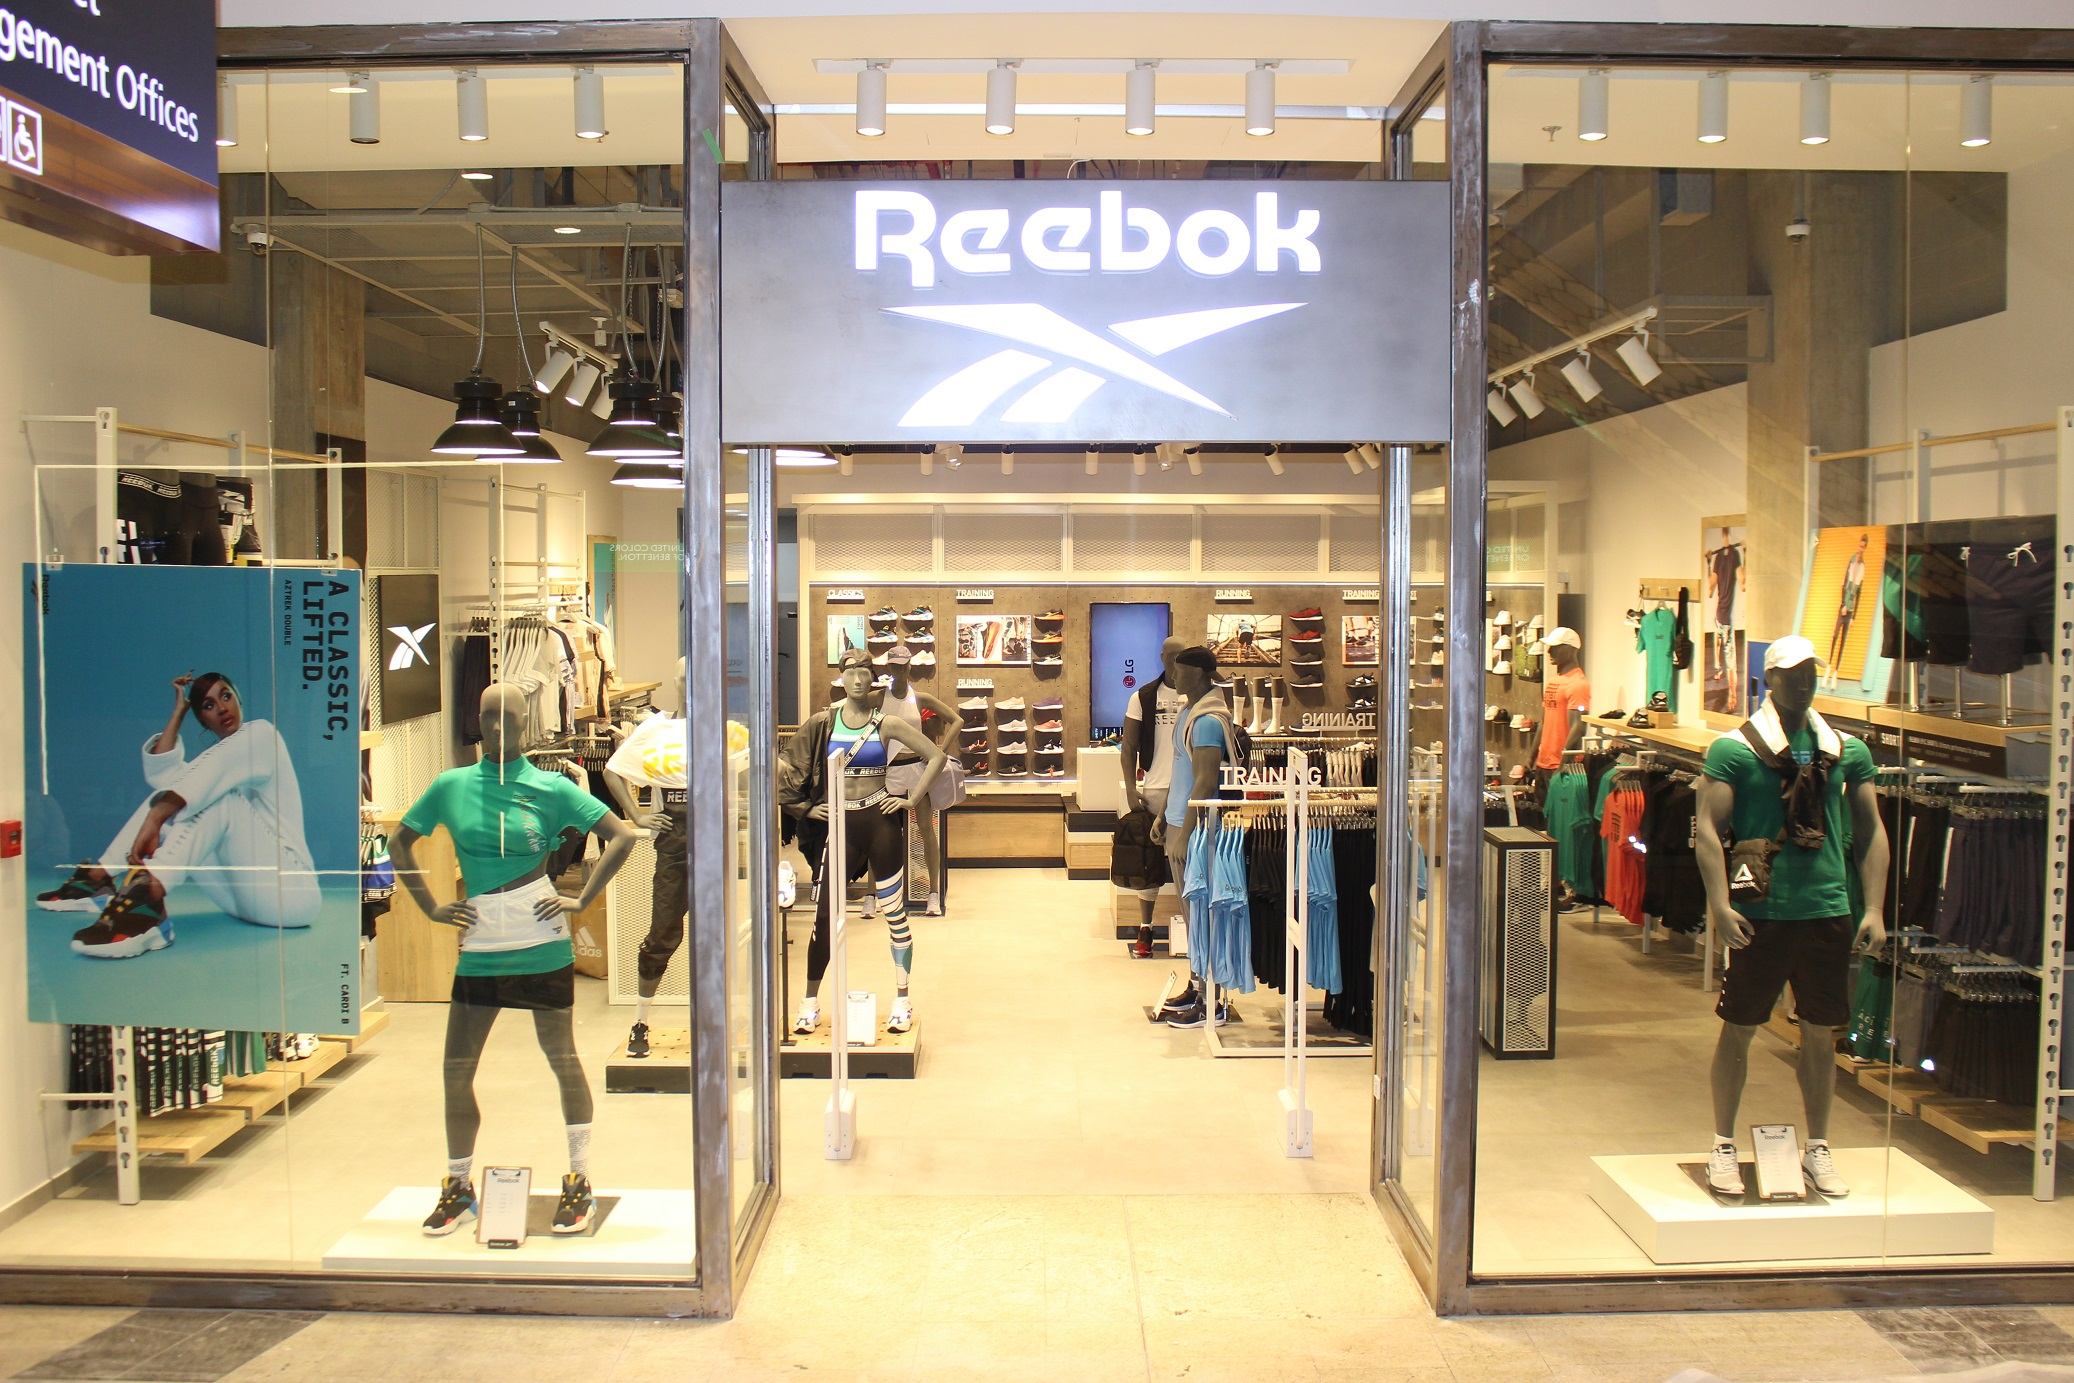 where is a reebok store located, OFF 73